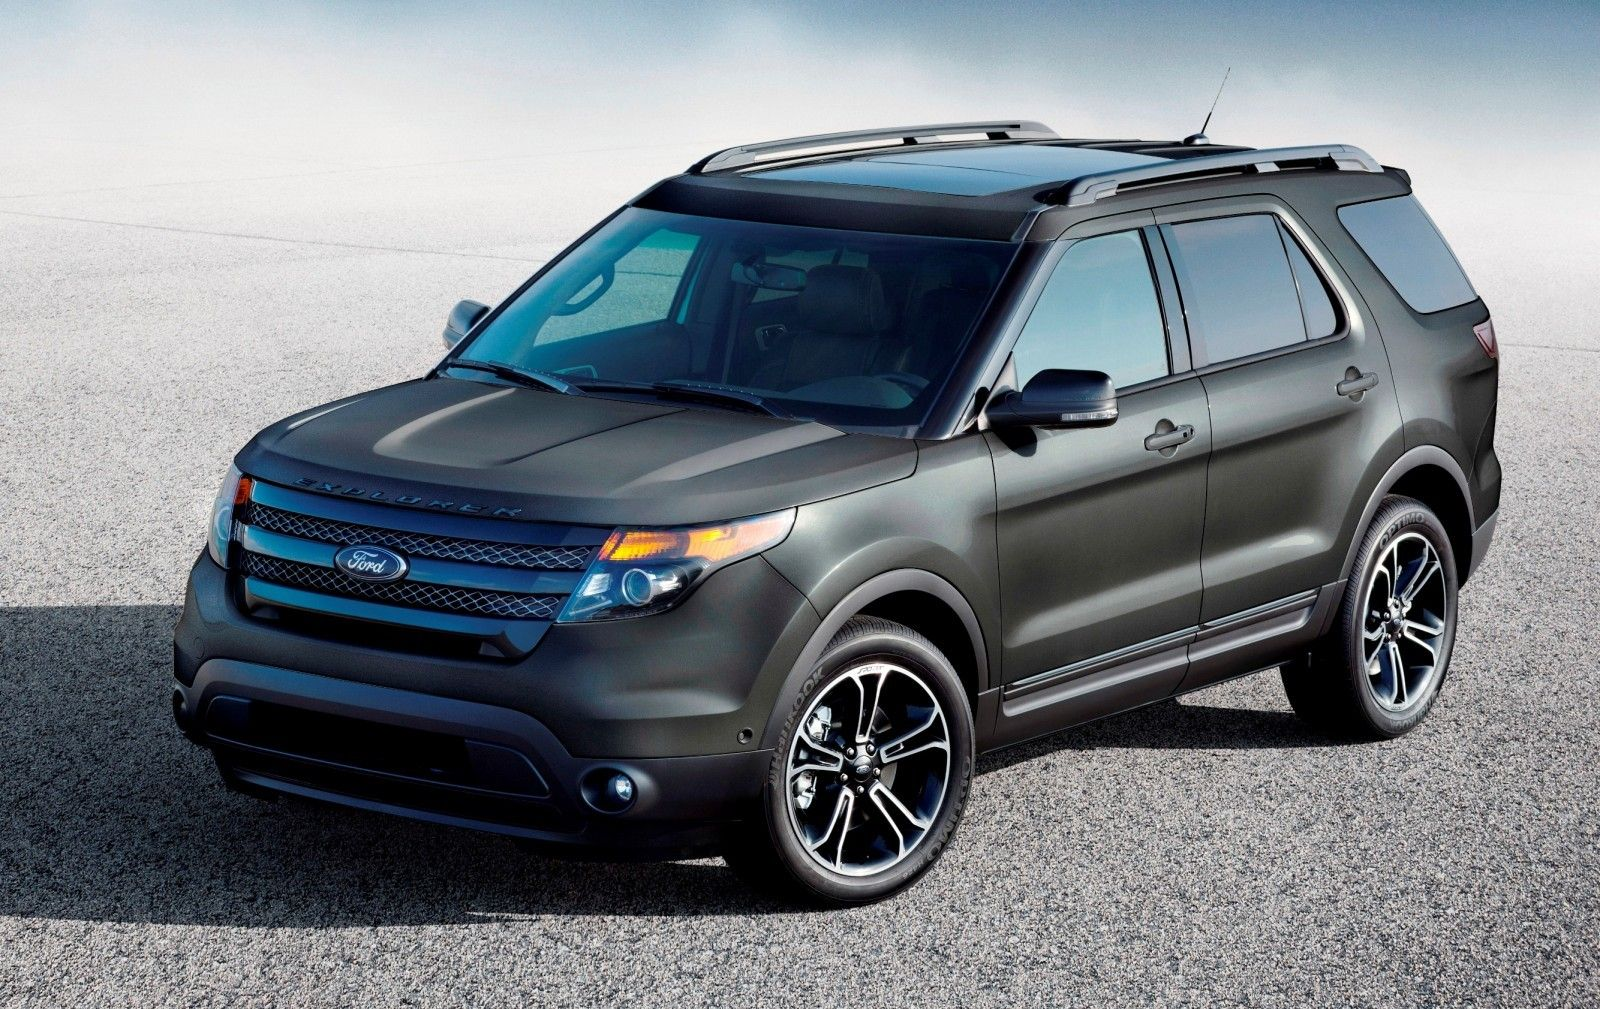 2015 Ford Explorer Xlt Appearance Pack Adds 2 0l Turbo Big Wheels And Dark Grey Black Trims 2013 Ford Explorer 2015 Ford Explorer Sport Ford Explorer Xlt